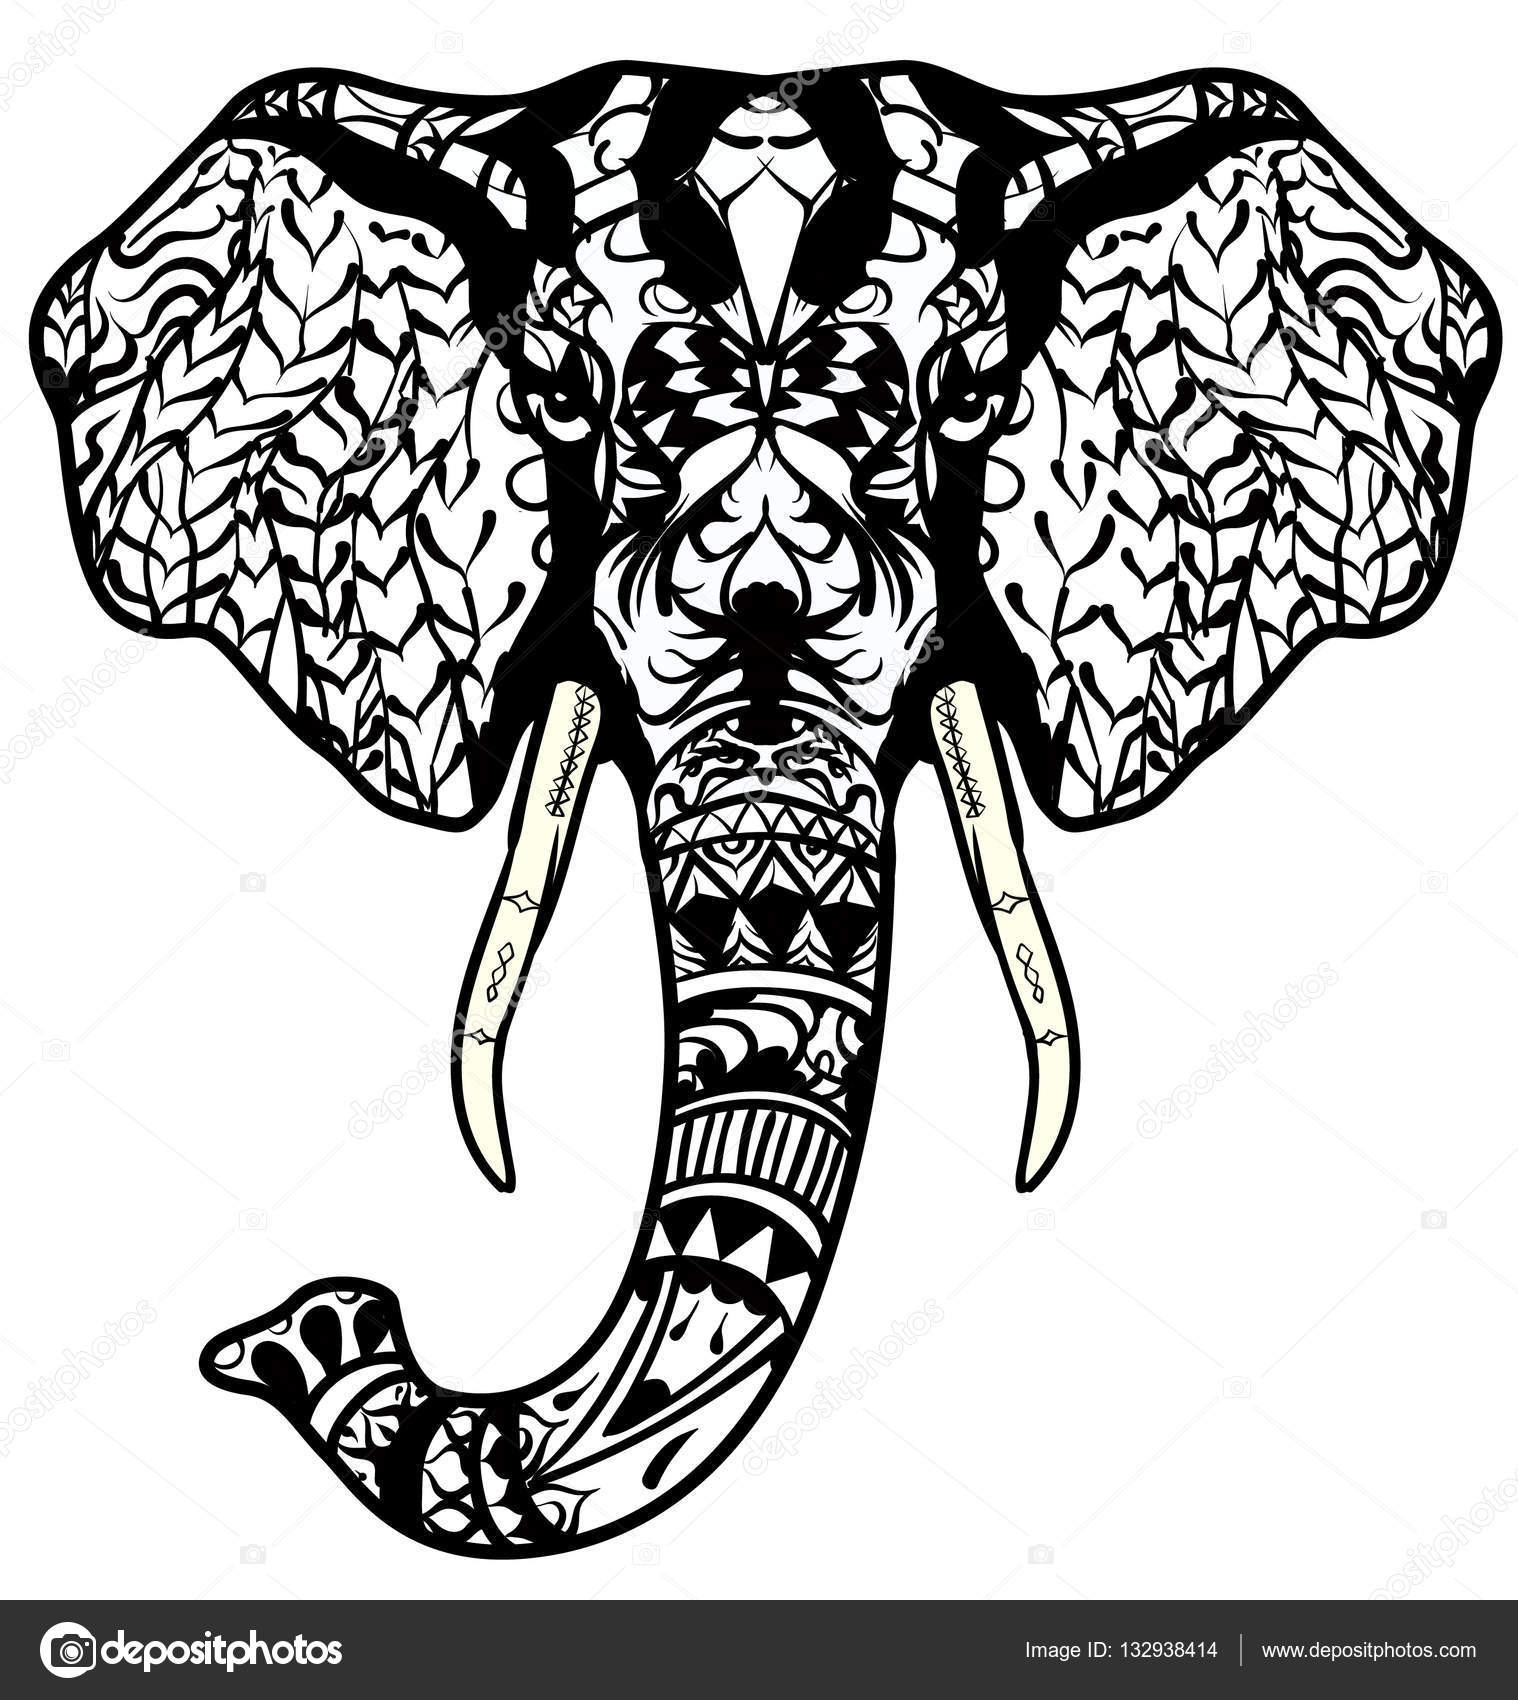 Elephant Head Coloring Page - Coloring Pages Ideas & Reviews